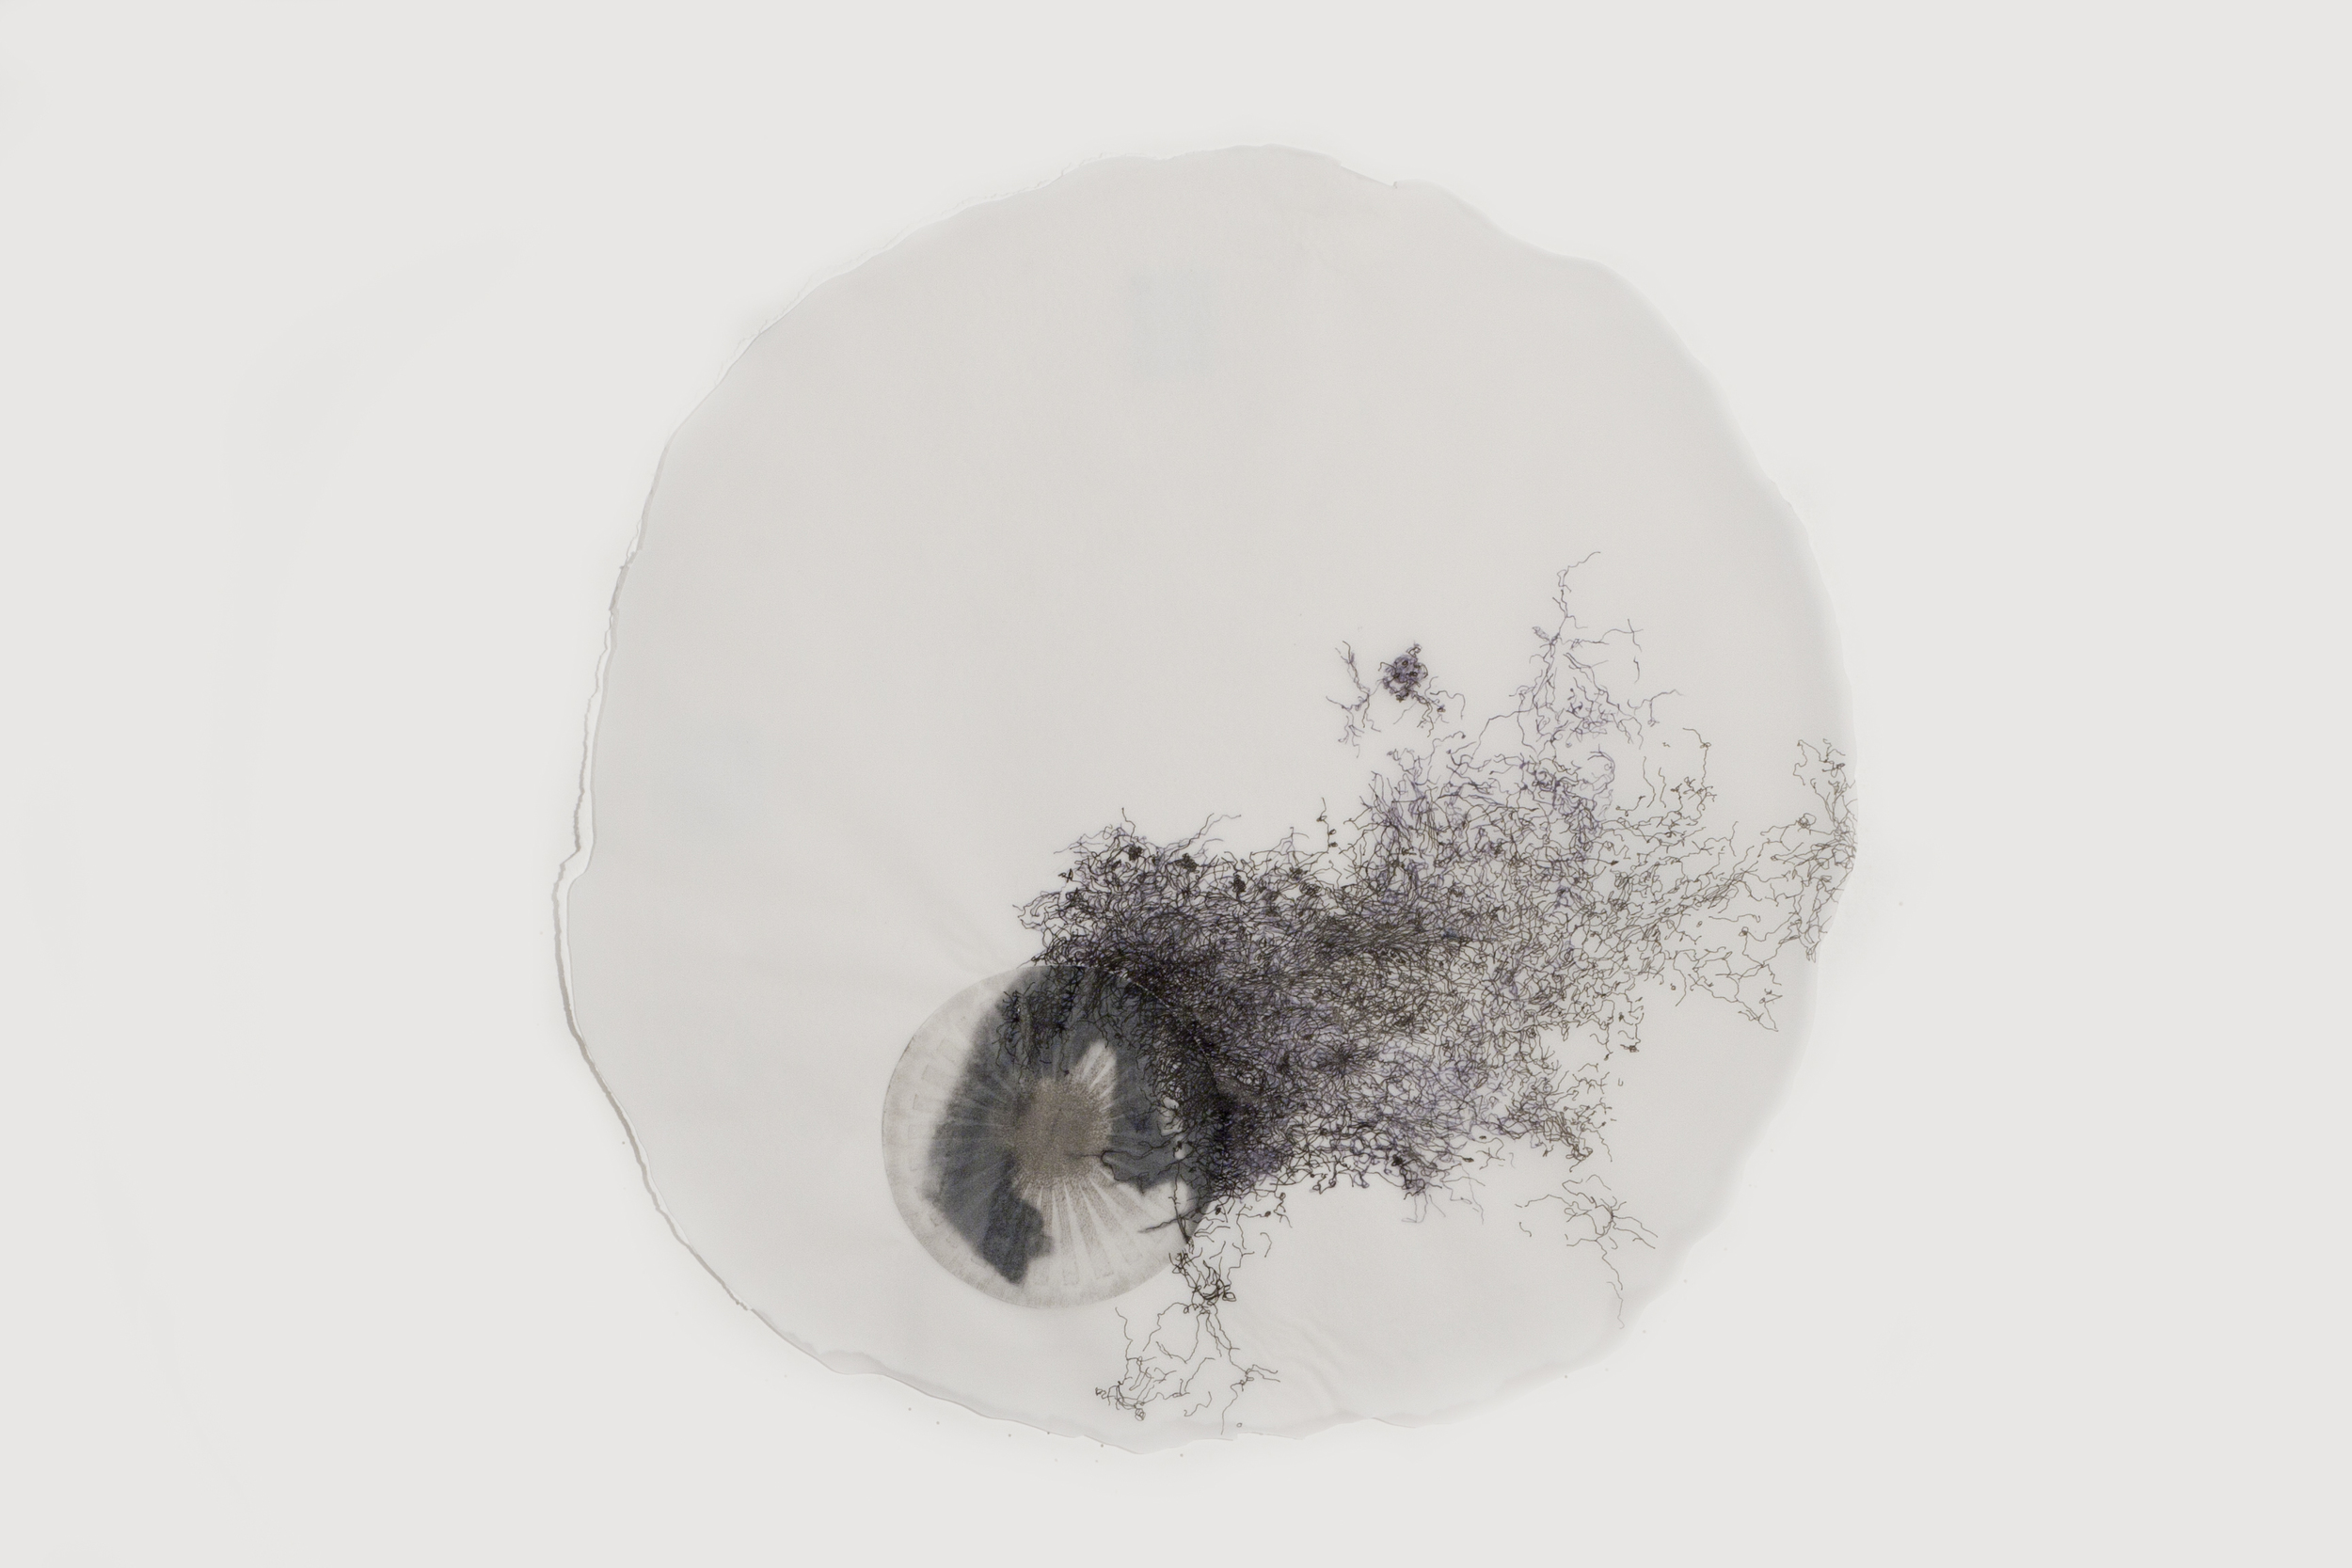 """In the Scale of Things 2   ink, collage, on vellum   12""""diameter   2010-2011"""